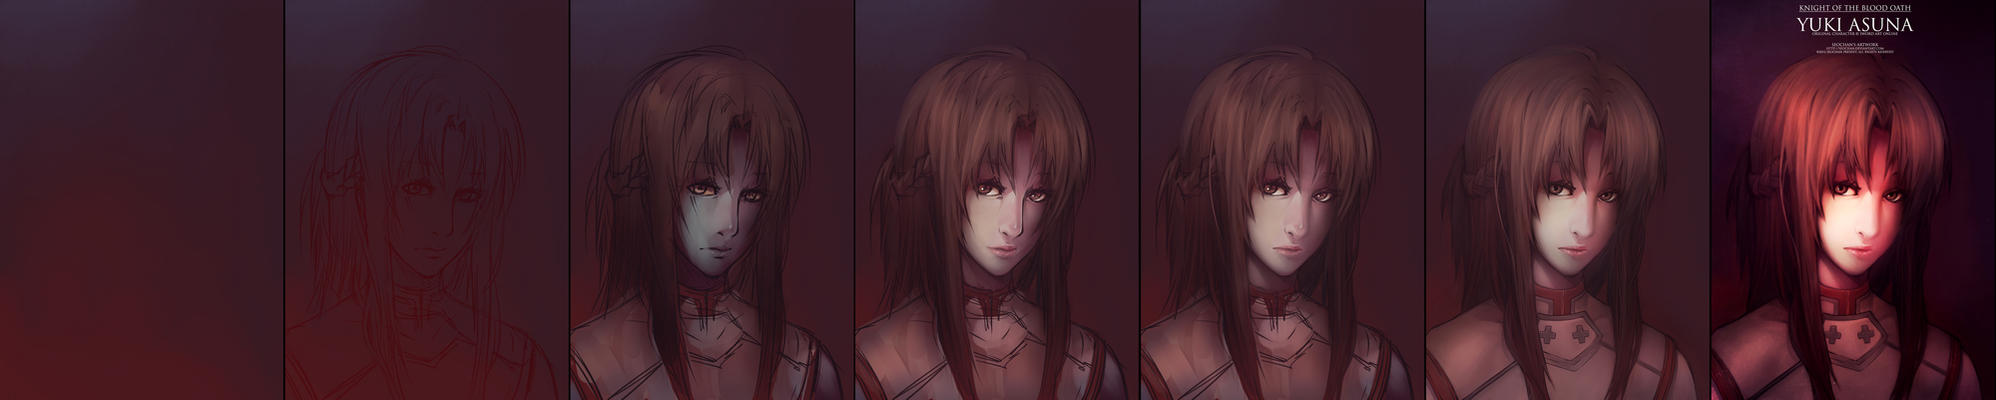 Asuna - Step by step by seochan